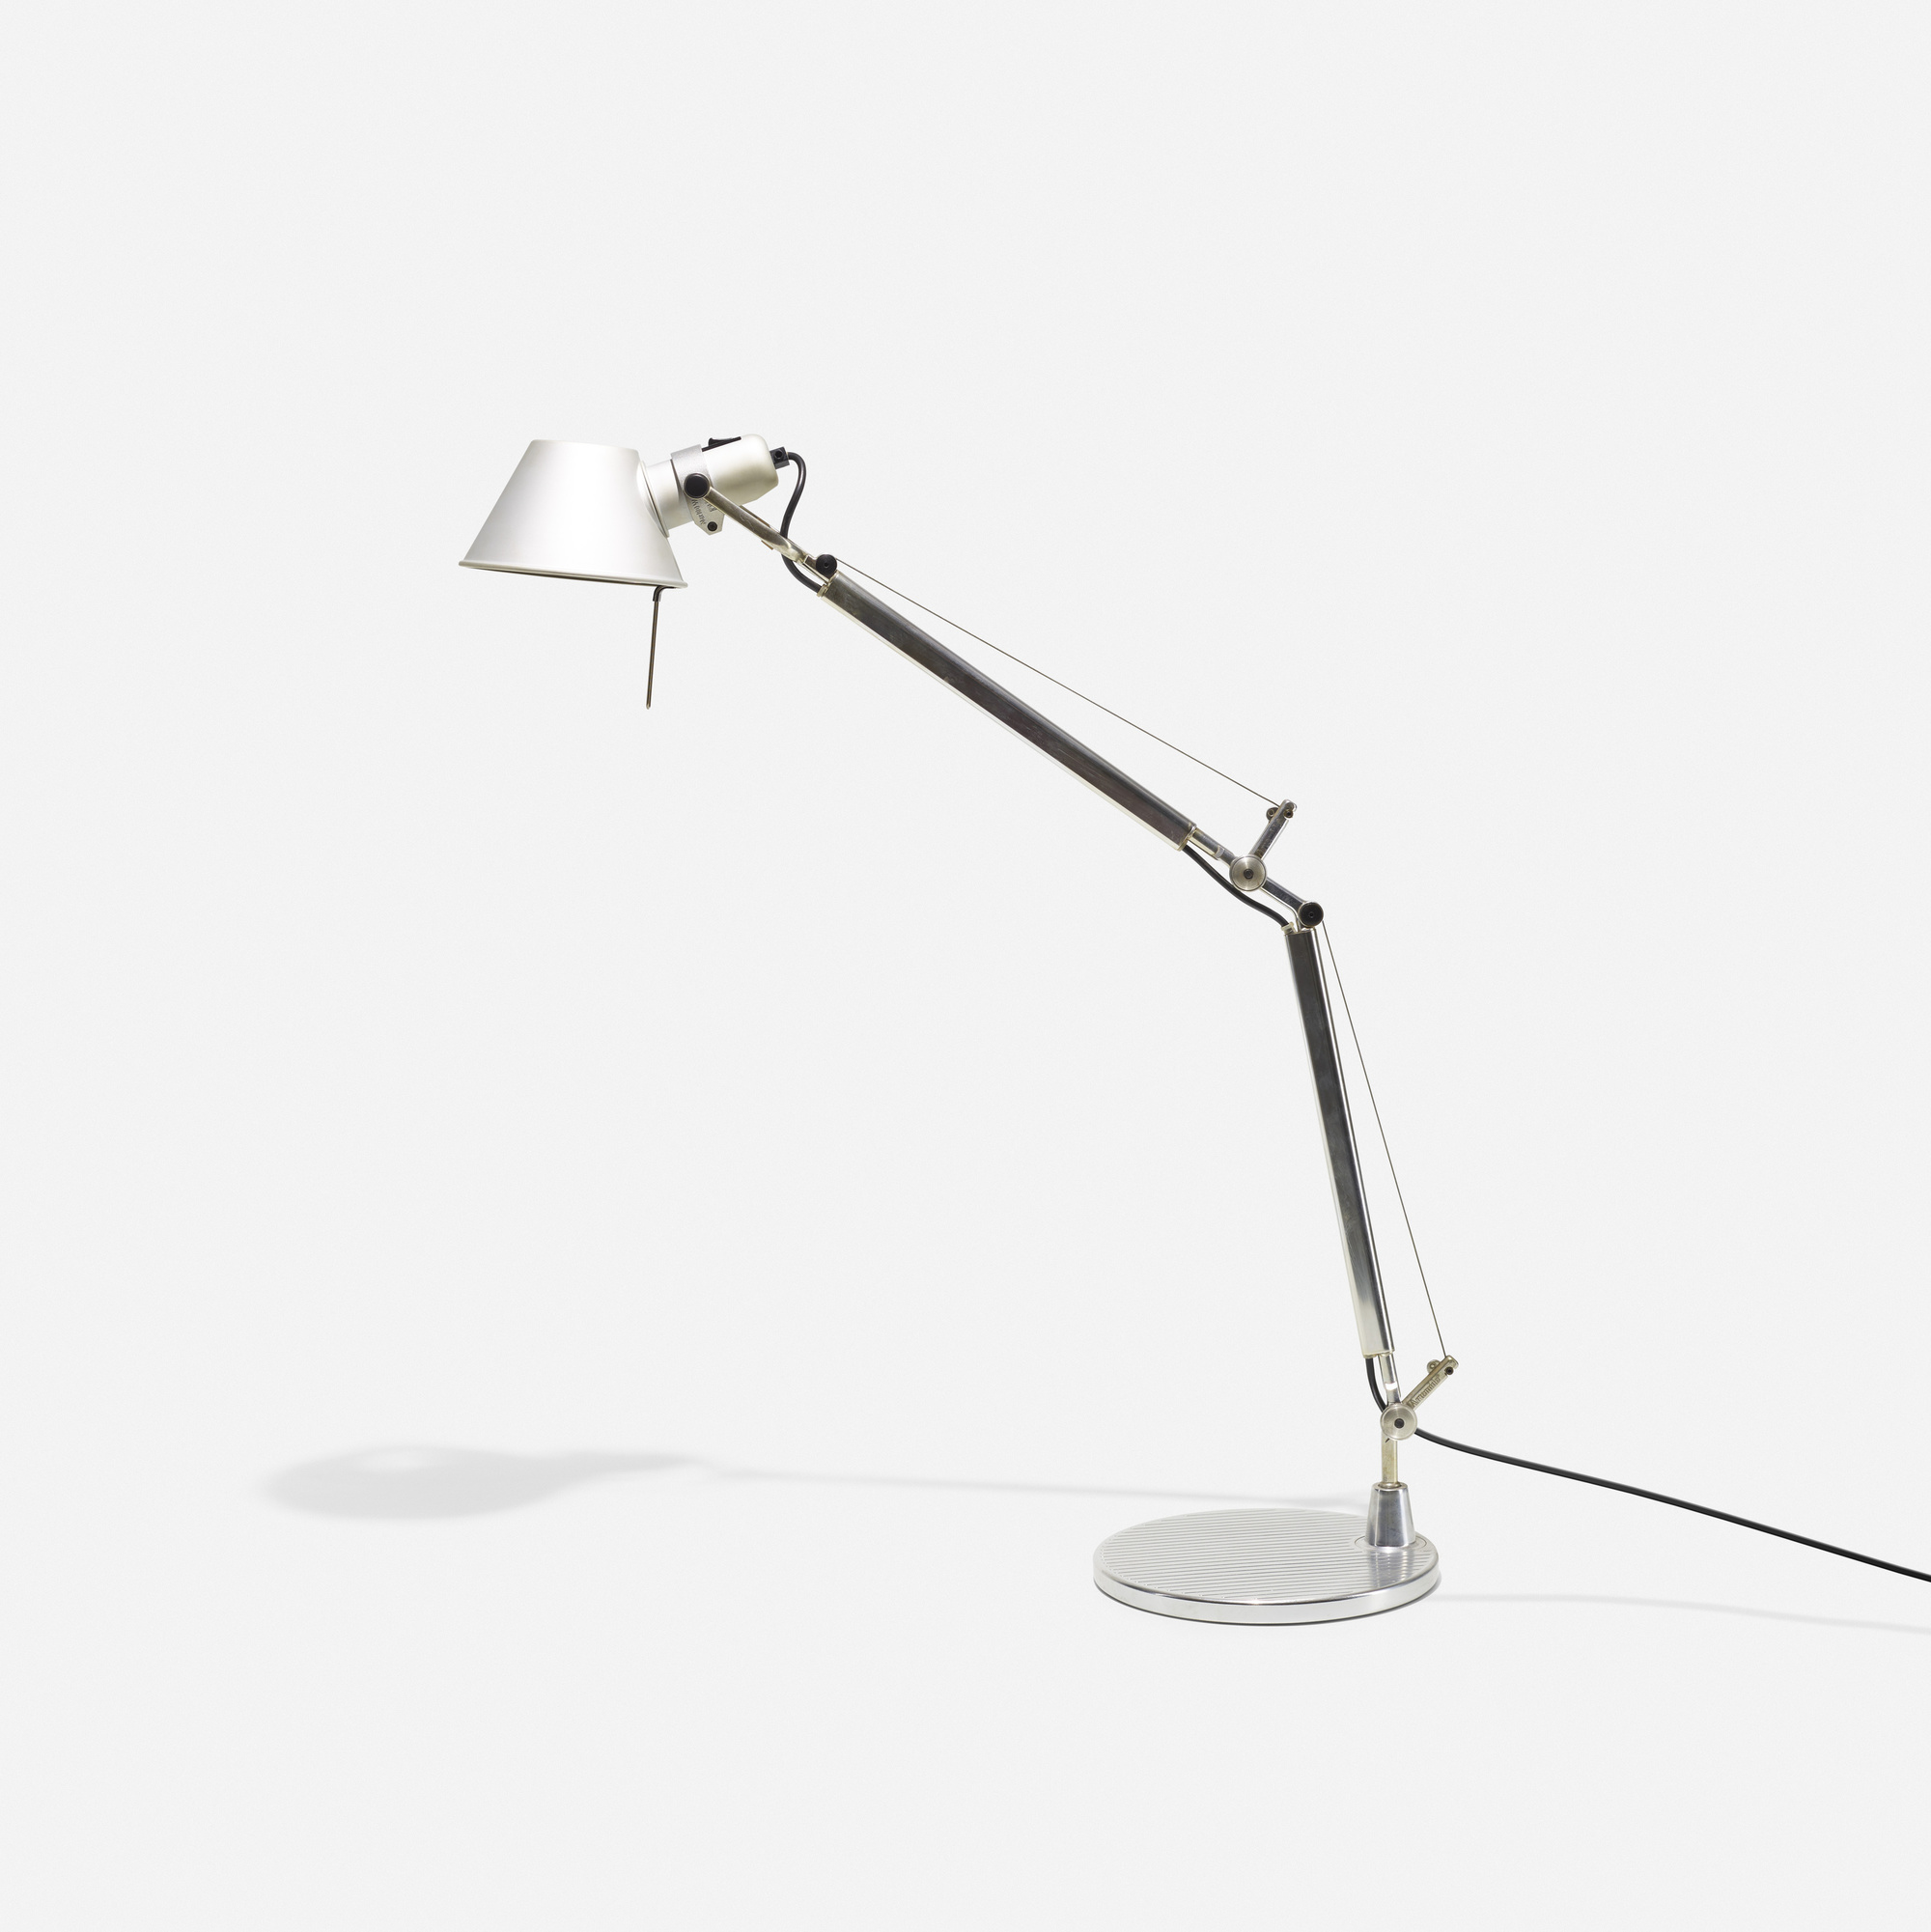 465: Michele De Lucchi and Giancarlo Fassina / Tolomeo table lamp (1 of 3)